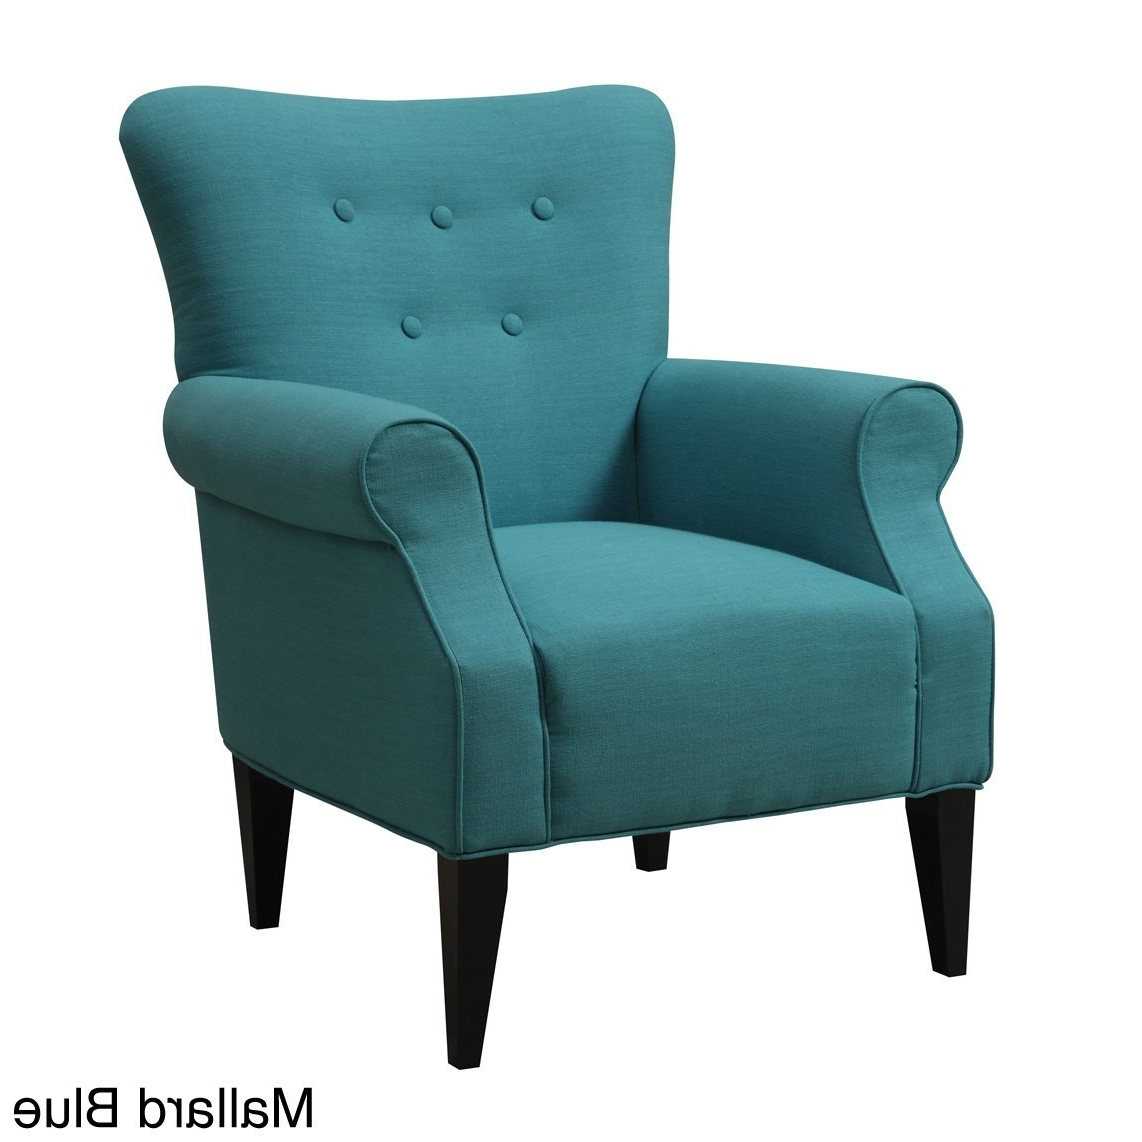 Widely Used Shop Emerald Lydia Accent Chair – Free Shipping Today – Overstock With Regard To Mallard Side Chairs With Cushion (View 17 of 20)